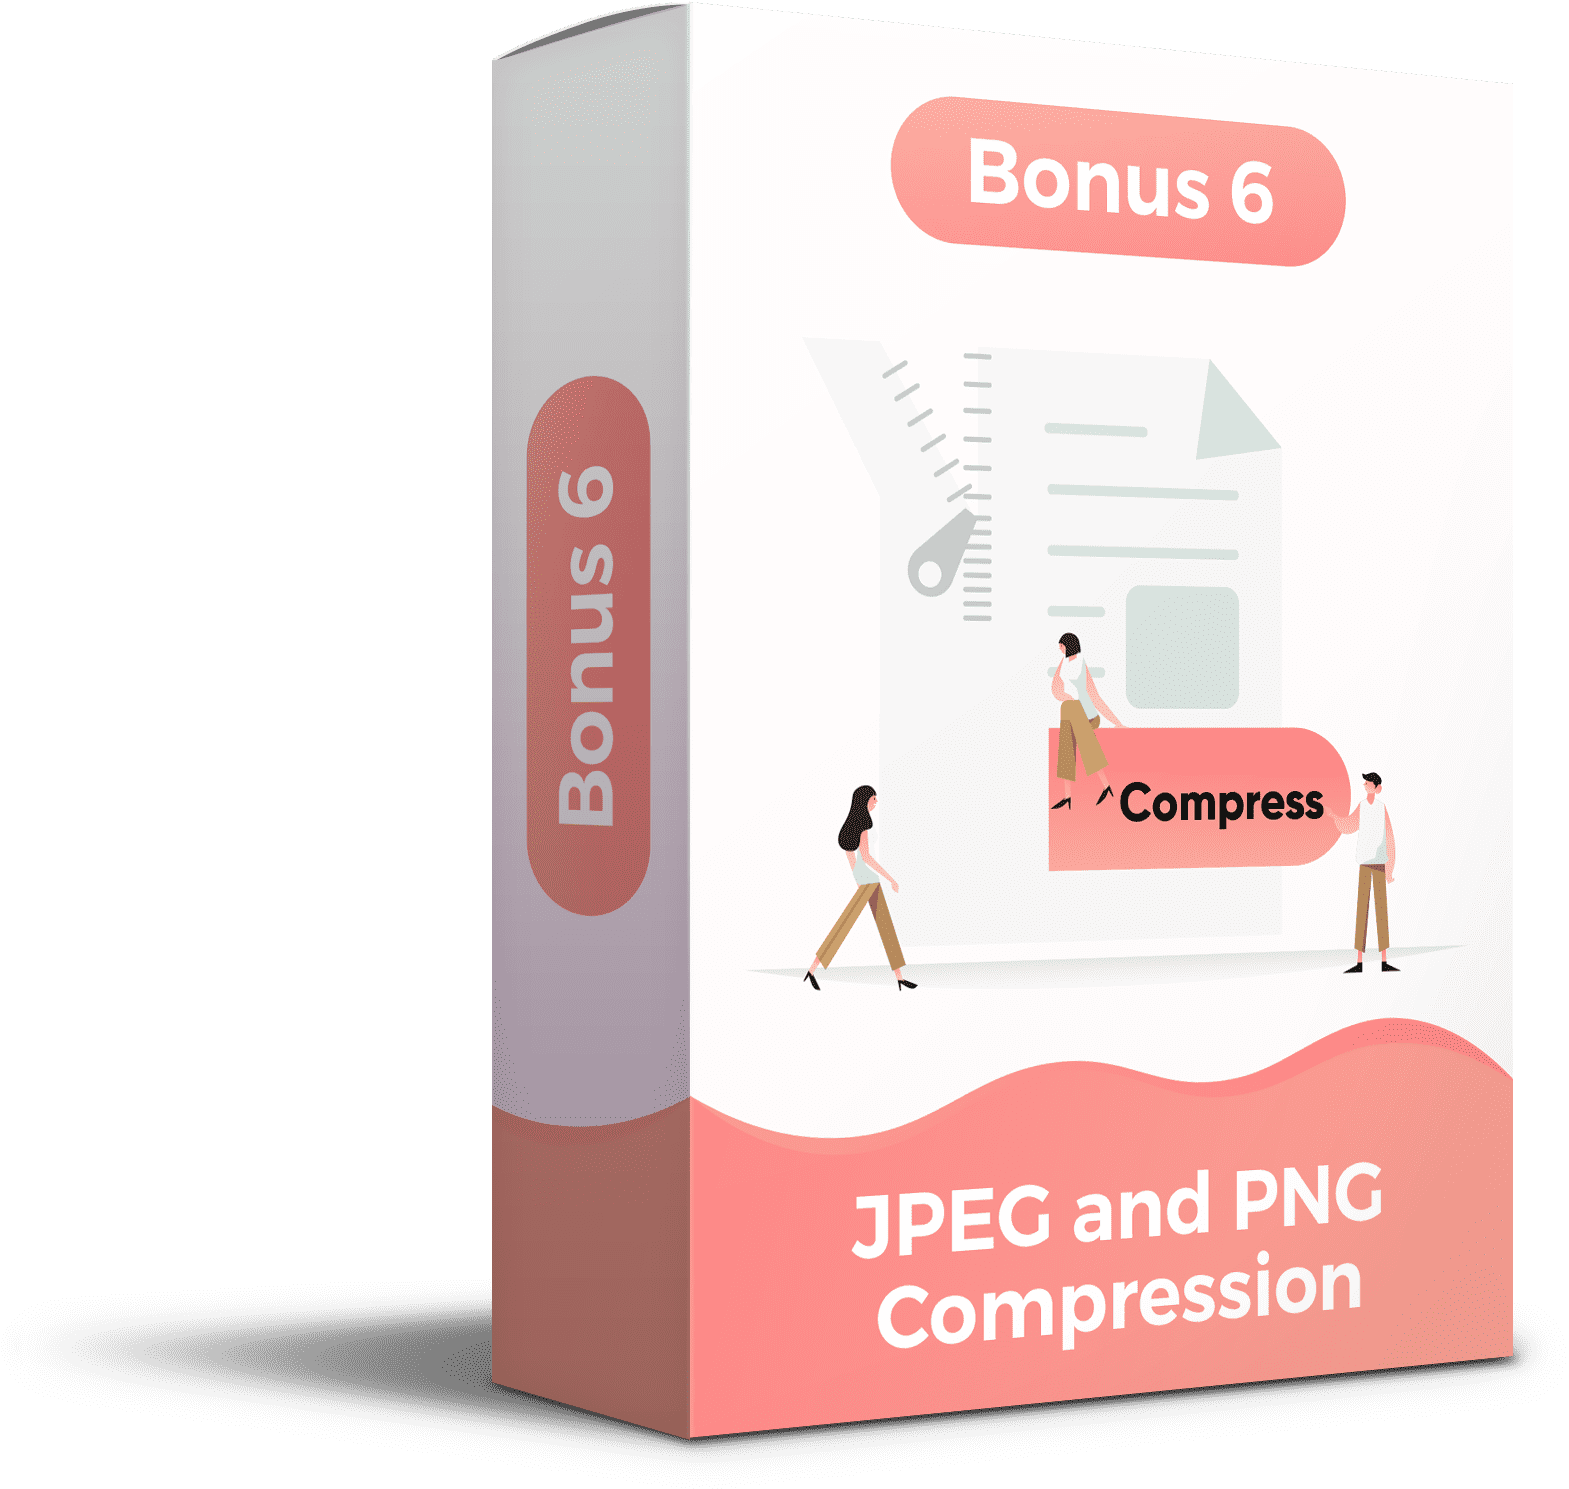 JPEG And PNG Compression